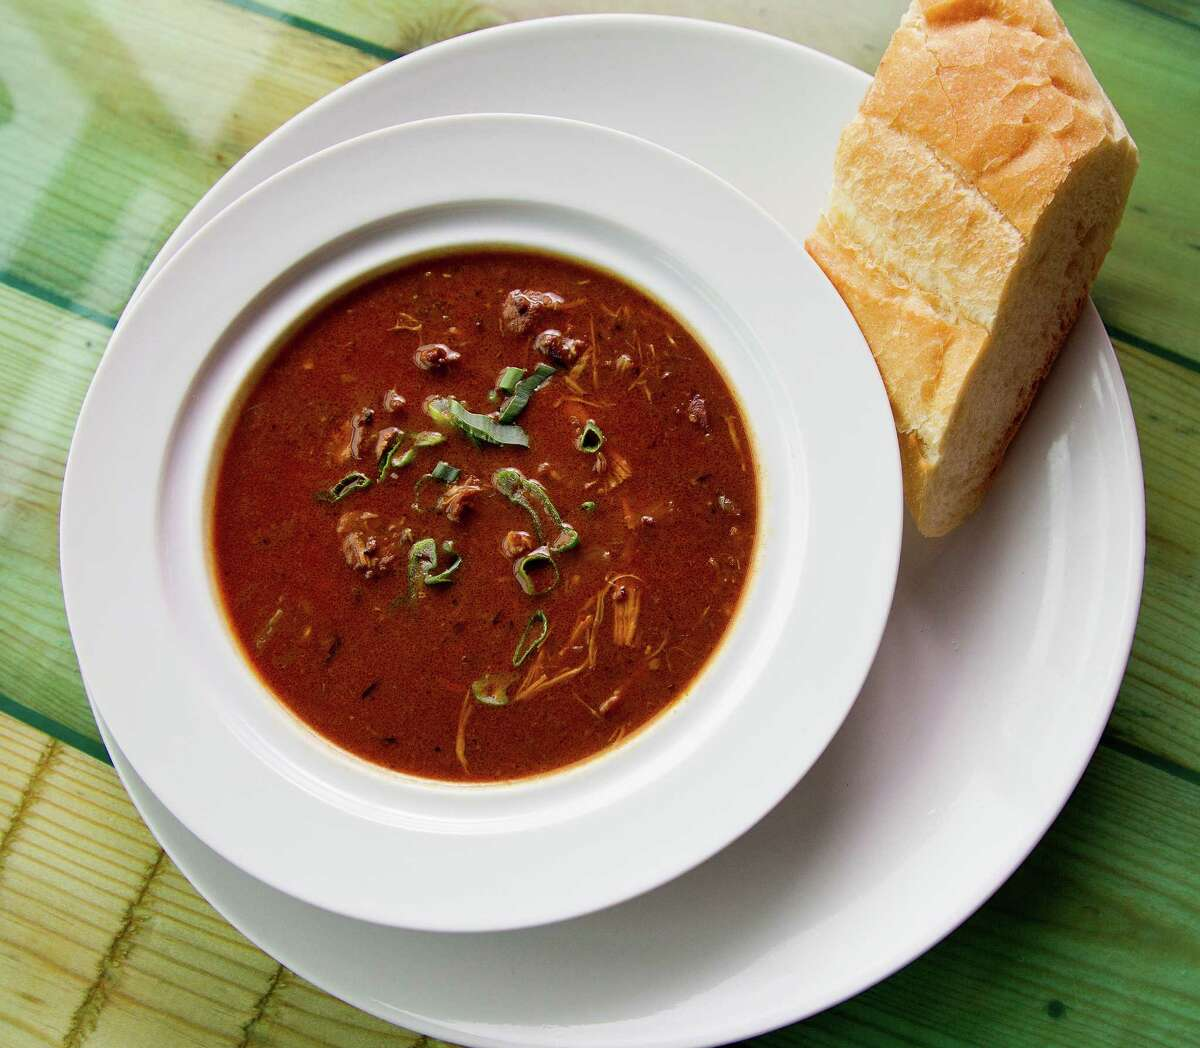 Gumbo Ya Ya (andouille sausage, roasted chicken, holy trinity and dark roux) easily ranks among the city's best.